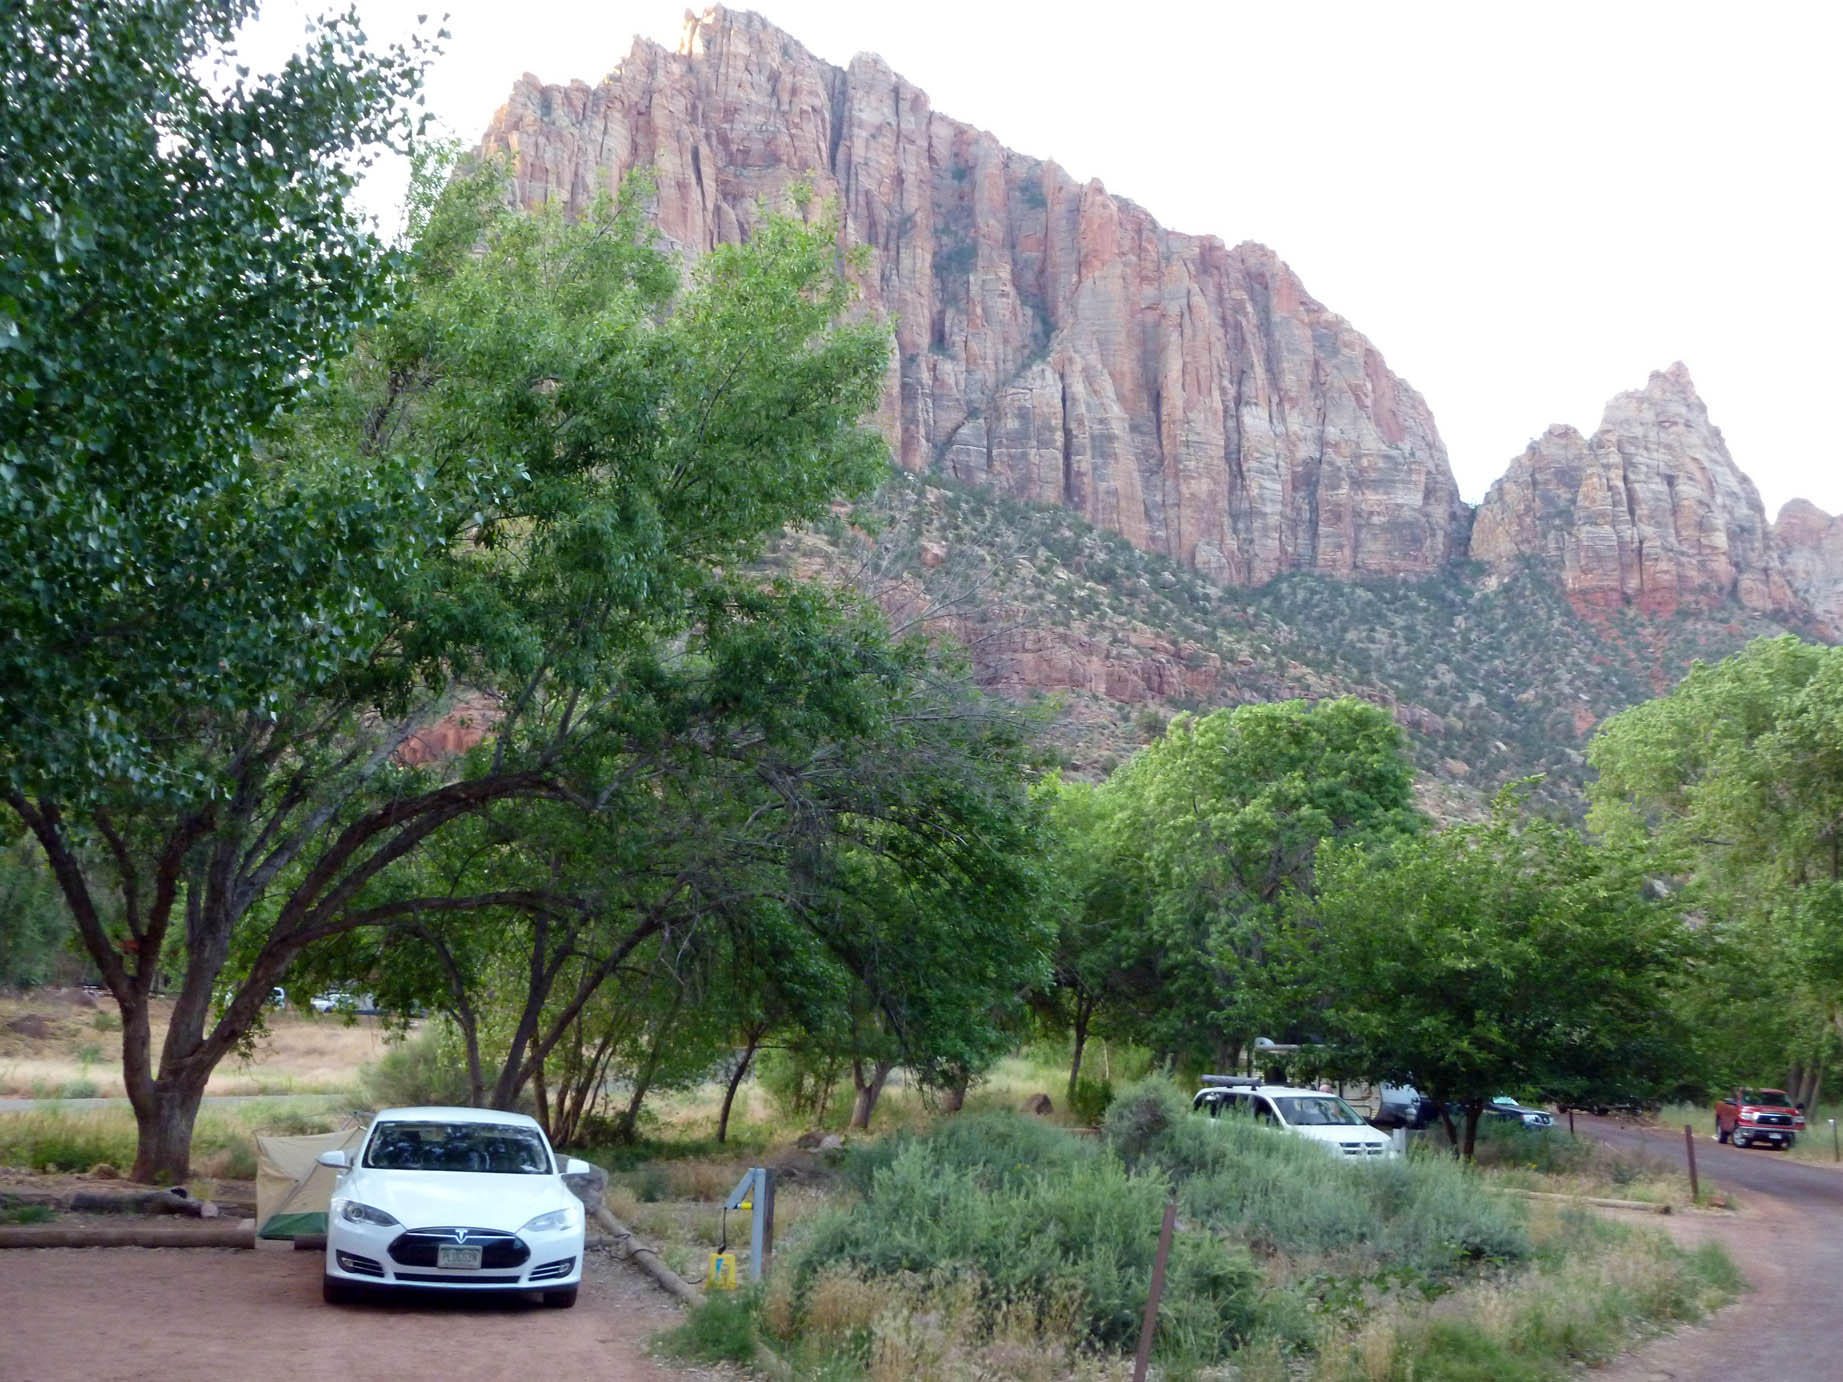 Model S at campsite Zion NP1683sf 6-10-16.jpg